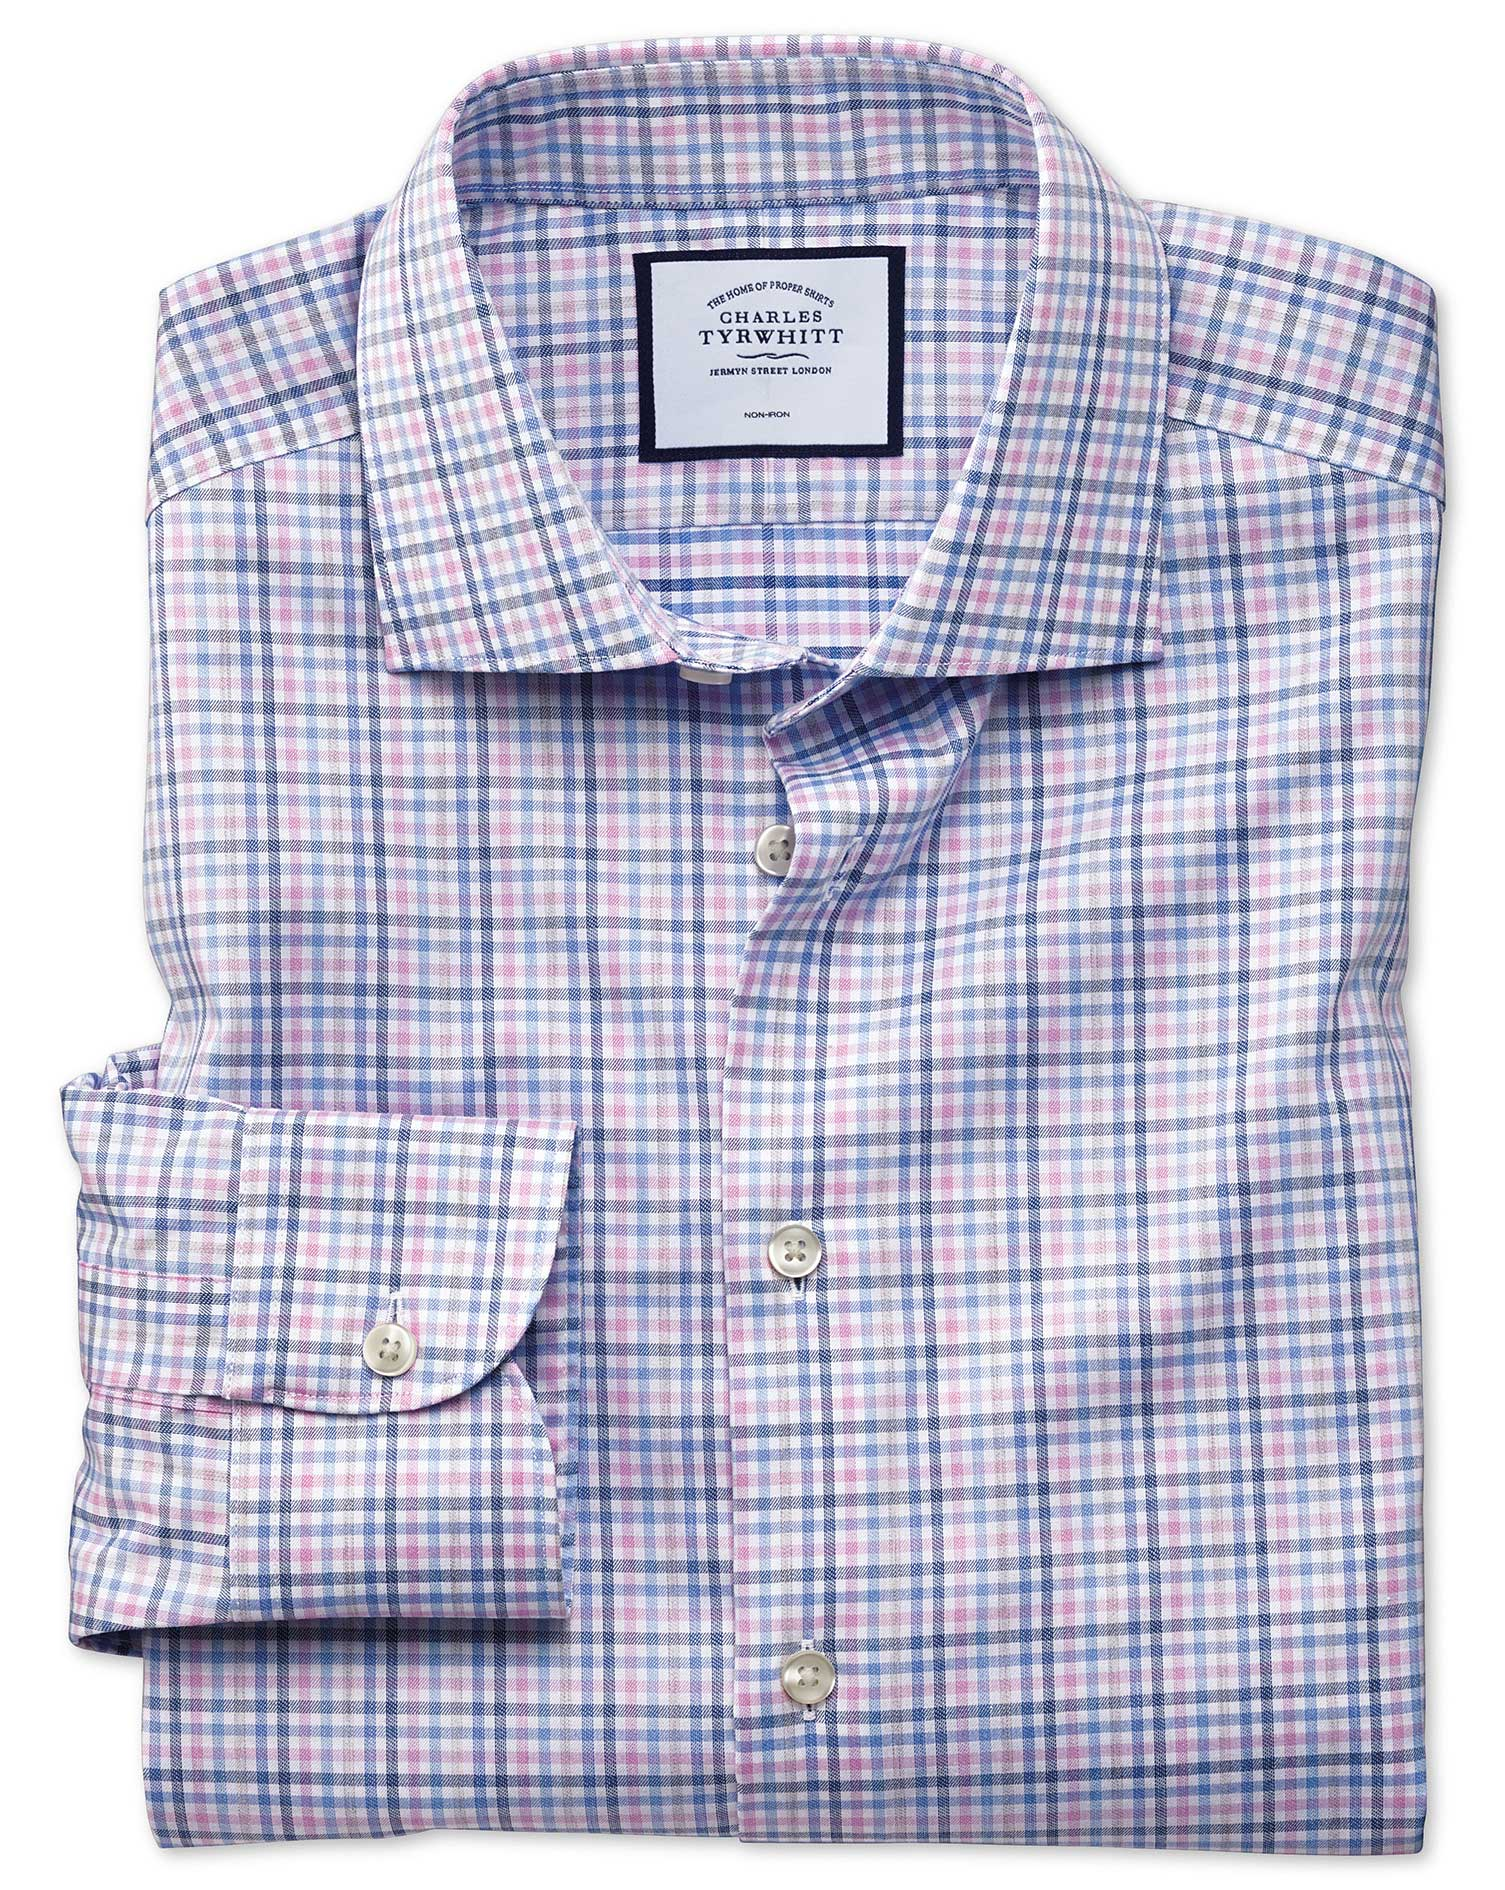 Slim Fit Business Casual Non-Iron Pink and Blue Check Cotton Formal Shirt Single Cuff Size 15.5/34 by Charles Tyrwhitt from Charles Tyrwhitt